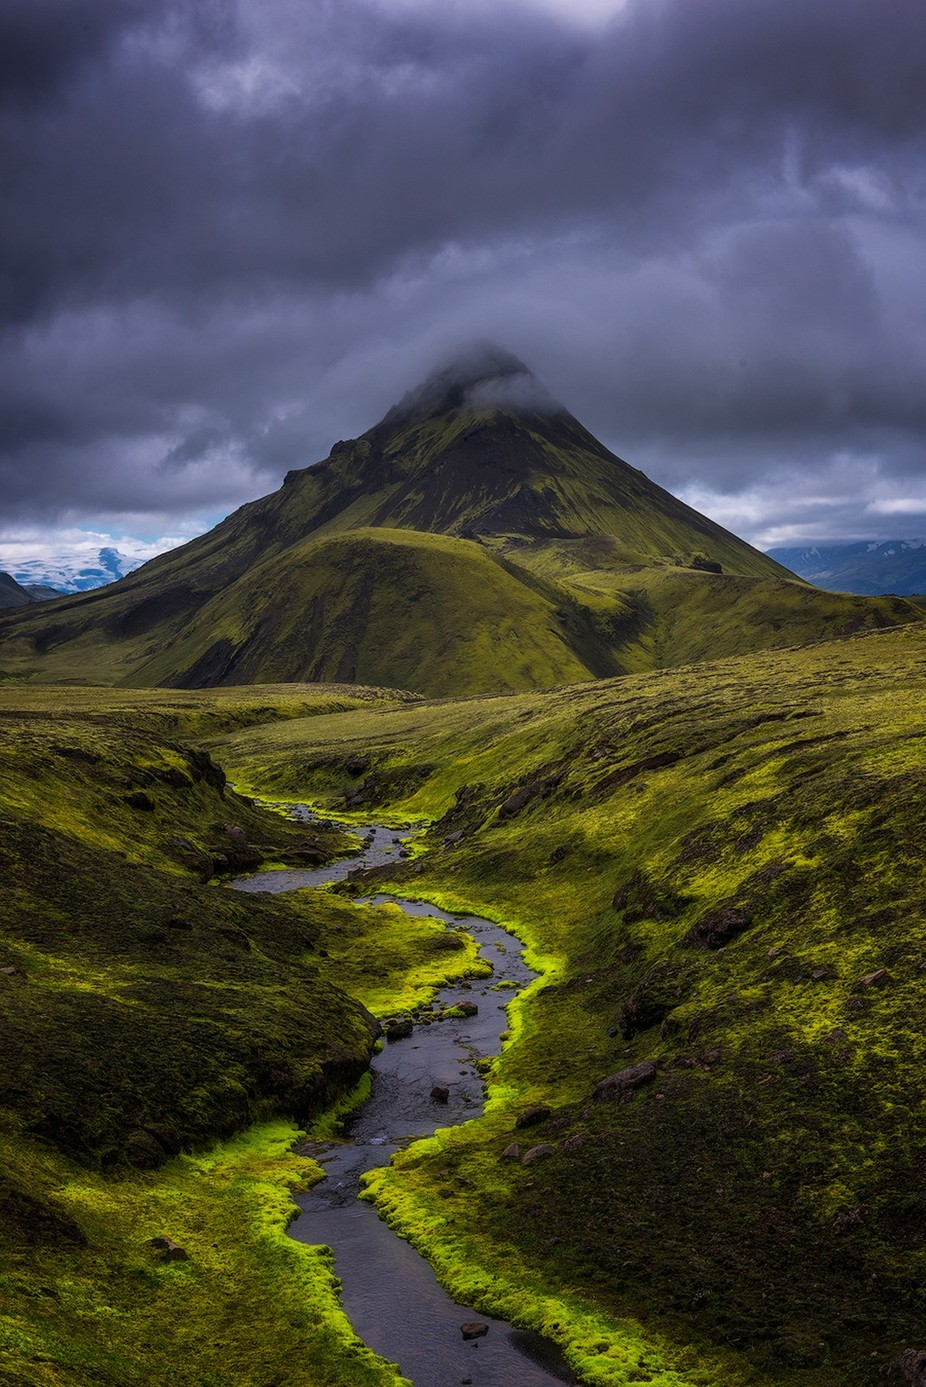 Icelandic Highlands by Tor-Ivar - Streams In Nature Photo Contest